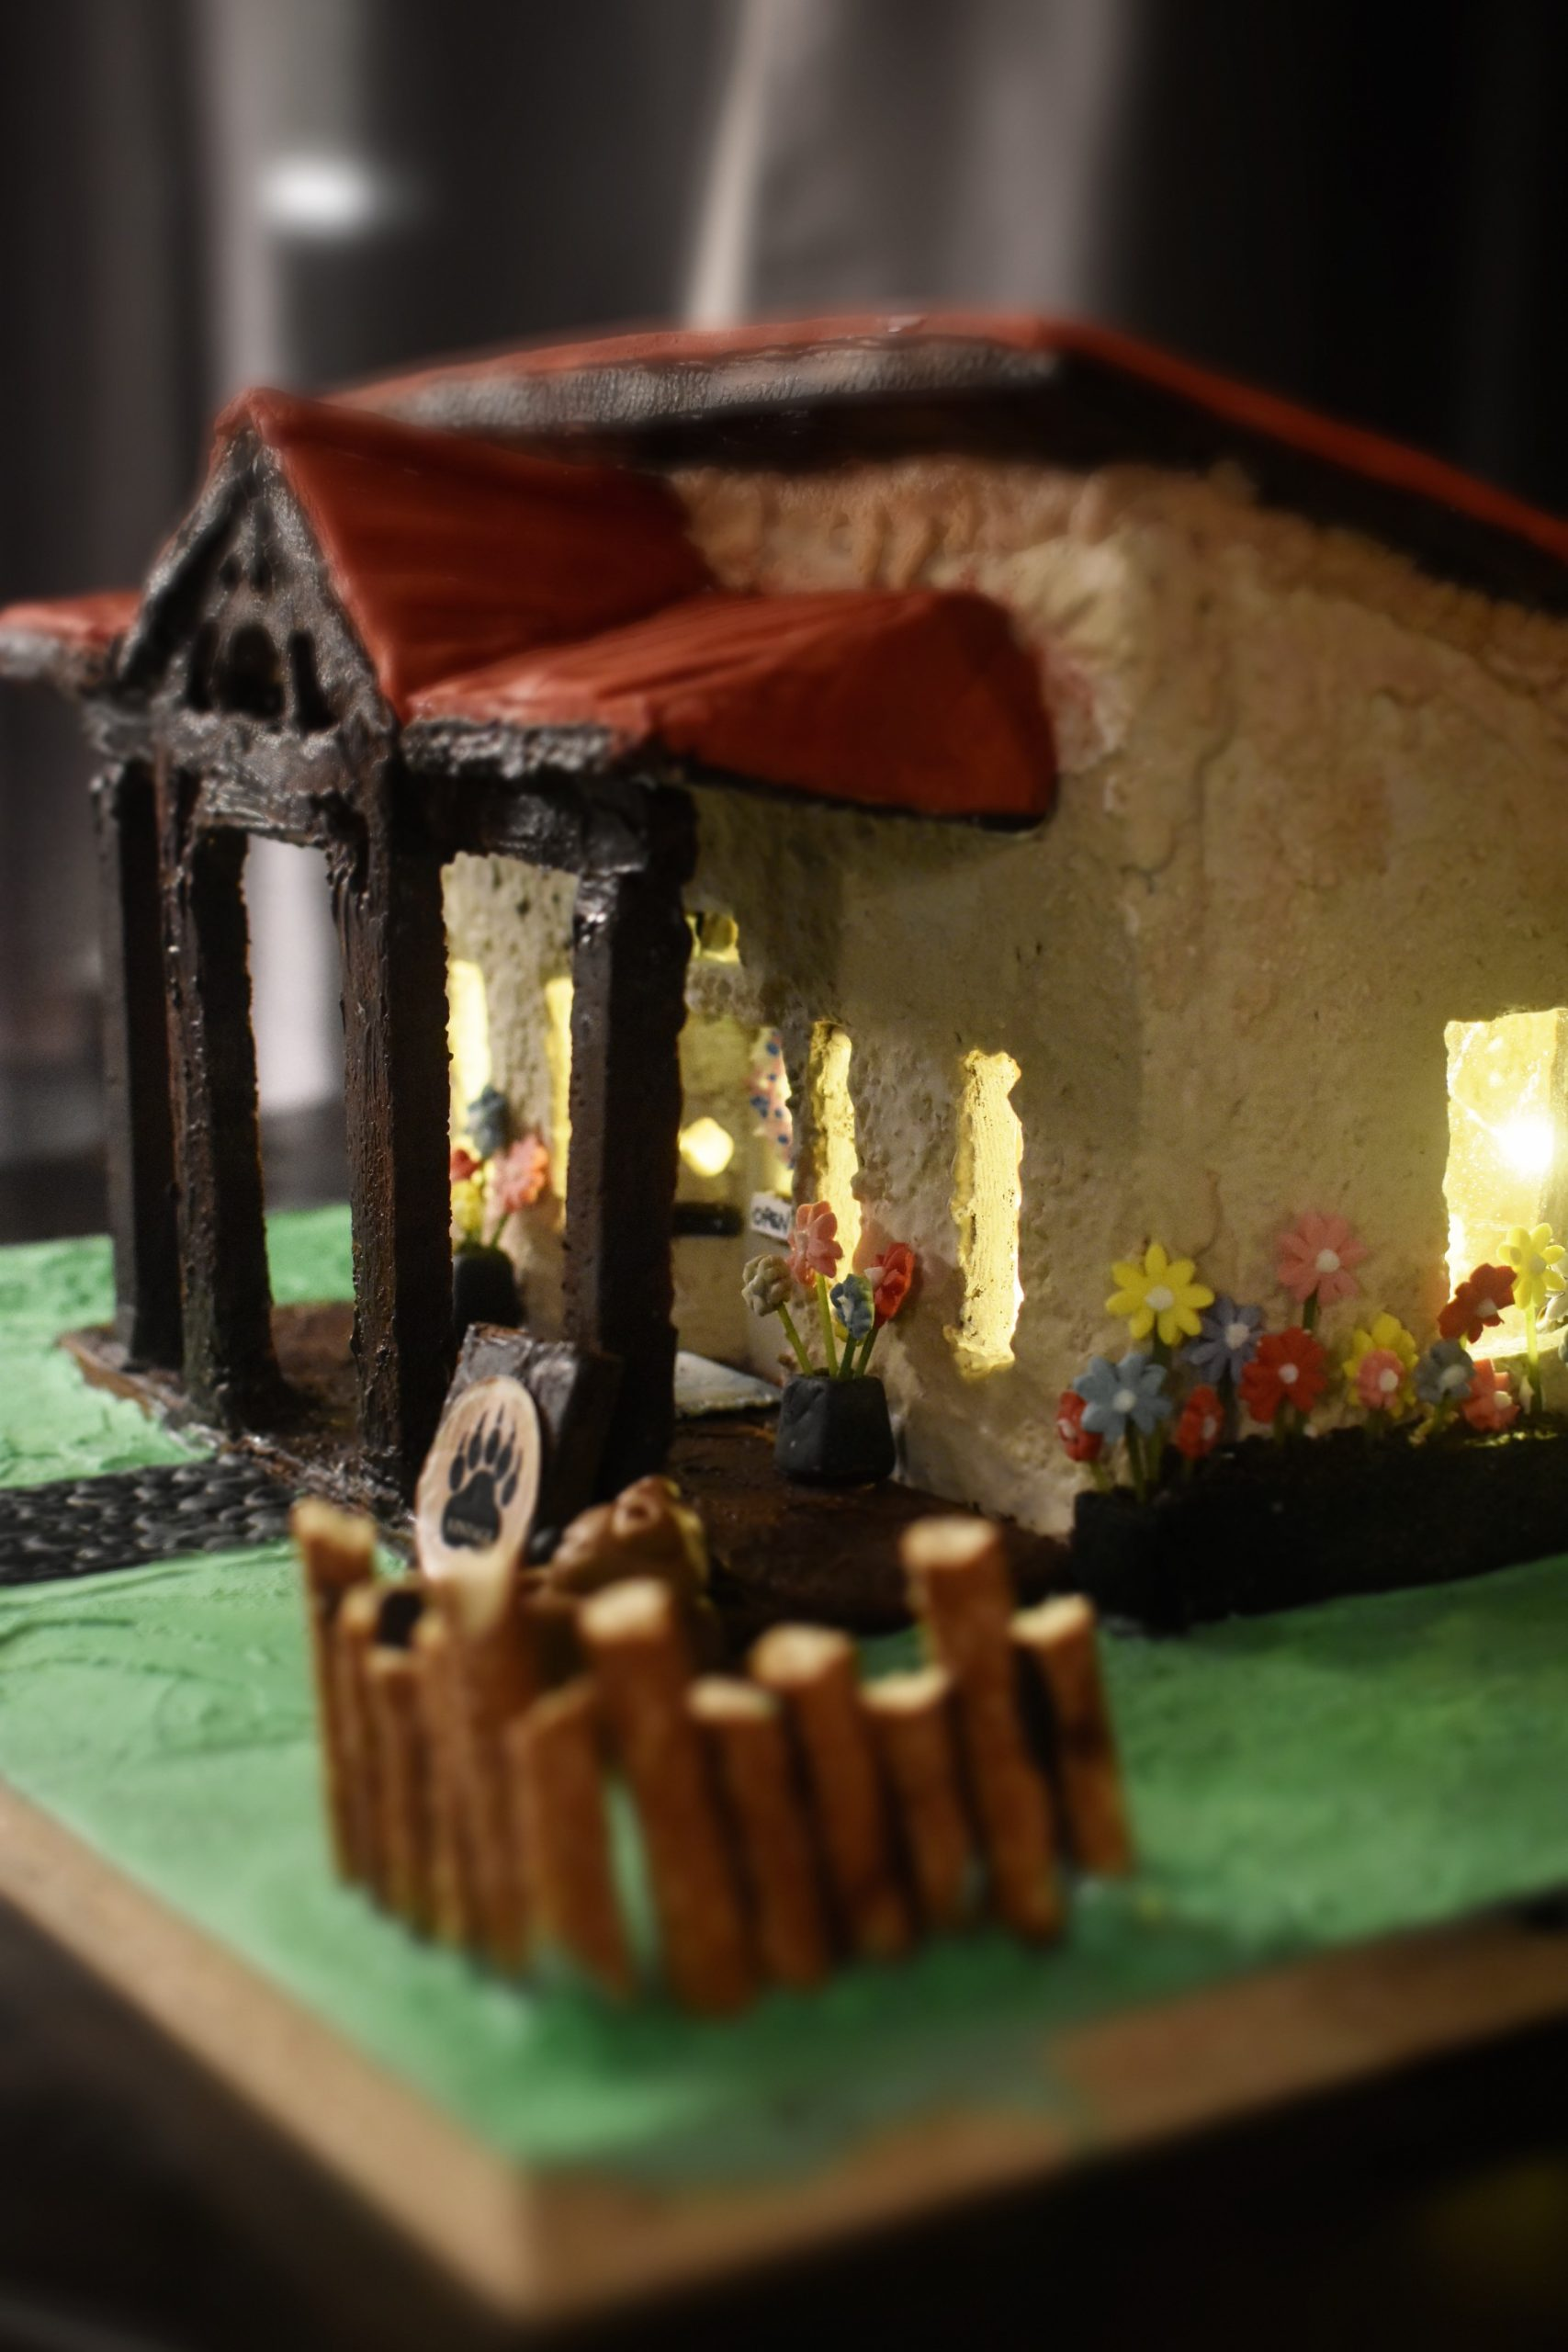 Bear In Mind Vintage Gingerbread House from award winning gingerbread artist Redawna Kalynchuk